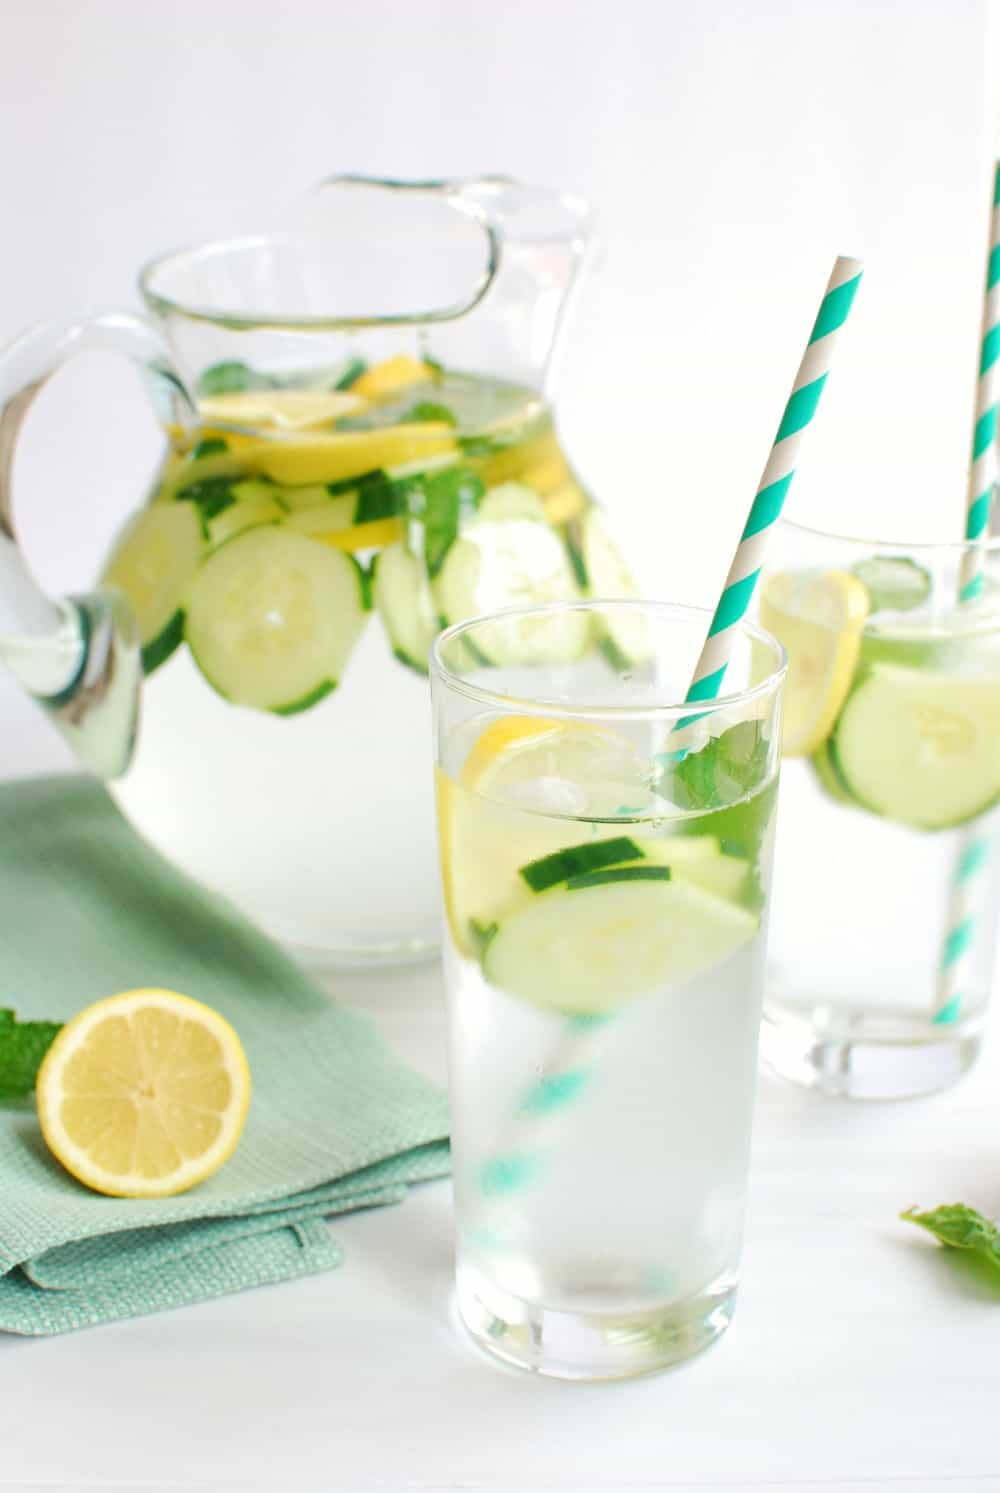 Glass of cucumber lemon mint water with a straw in it